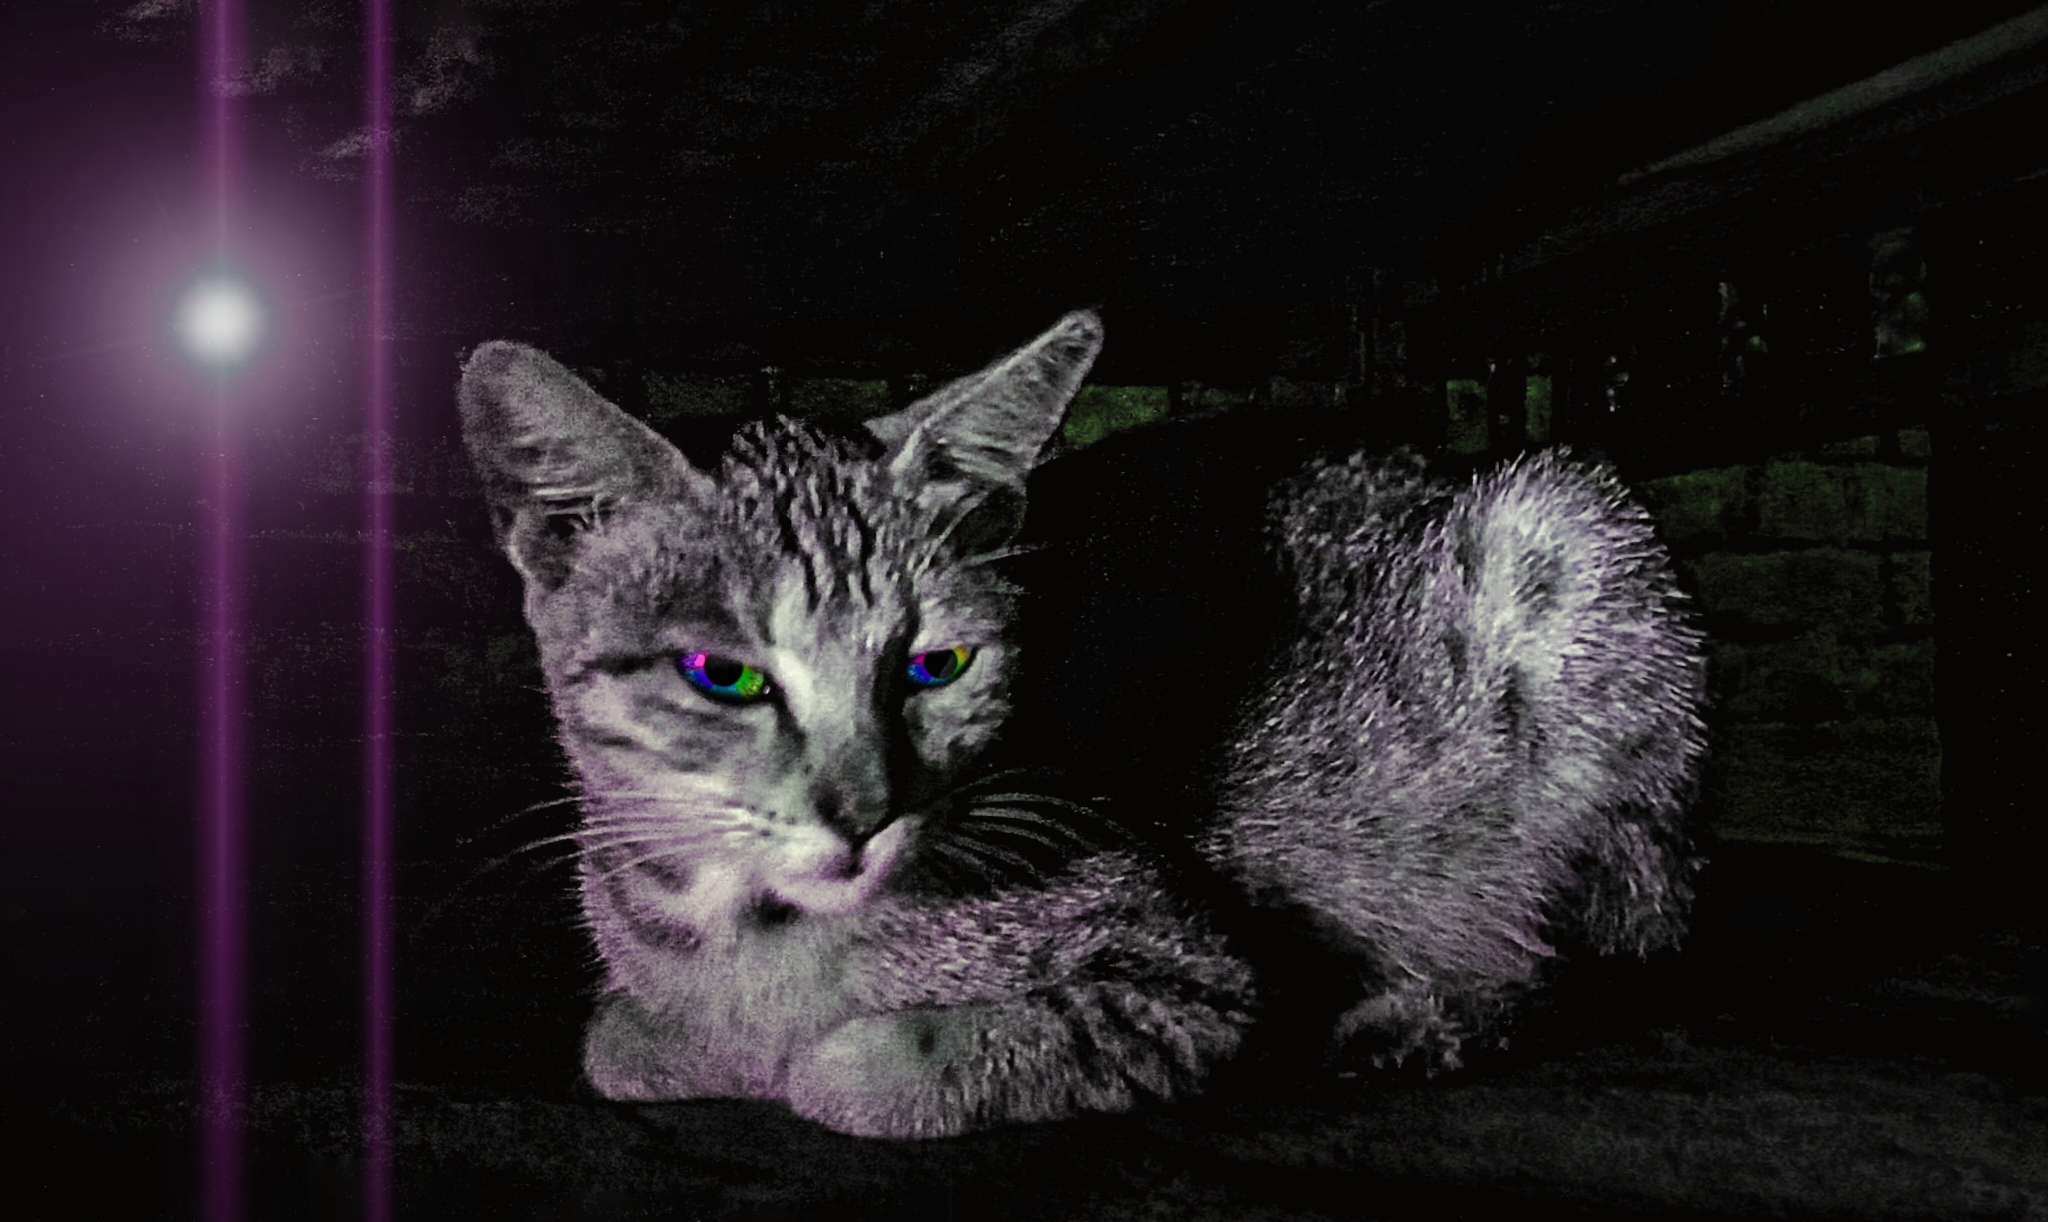 Cat at night time